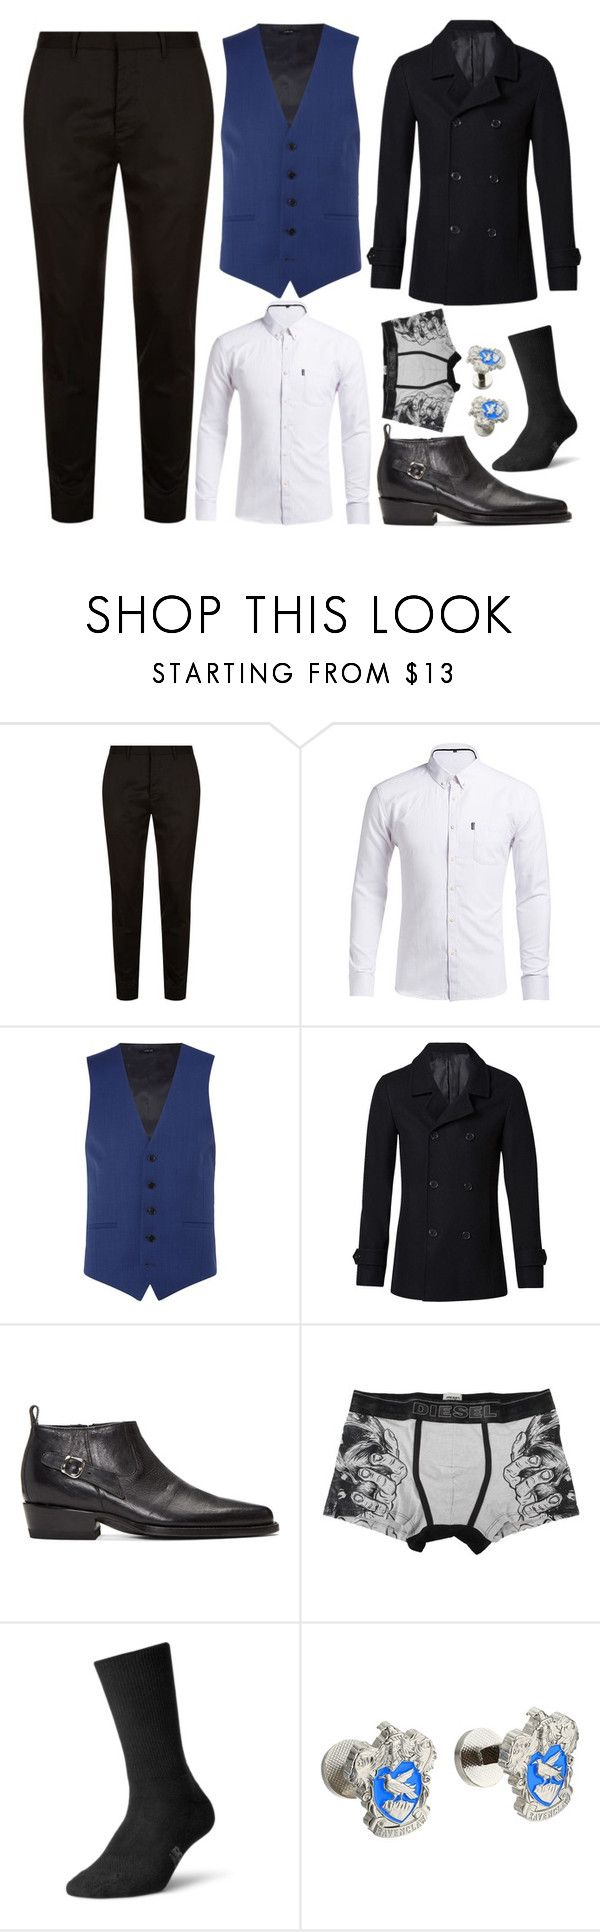 """""""Lucian Orion Morningstar - Formal Outift    Mini Game 06"""" by natasha-maree13 ❤ liked on Polyvore featuring AllSaints, Kenneth Cole, Witchery, Enfants Riches Déprimés, Diesel, New Balance, Cufflinks, Inc., men's fashion, menswear and polyvoreeditorial"""